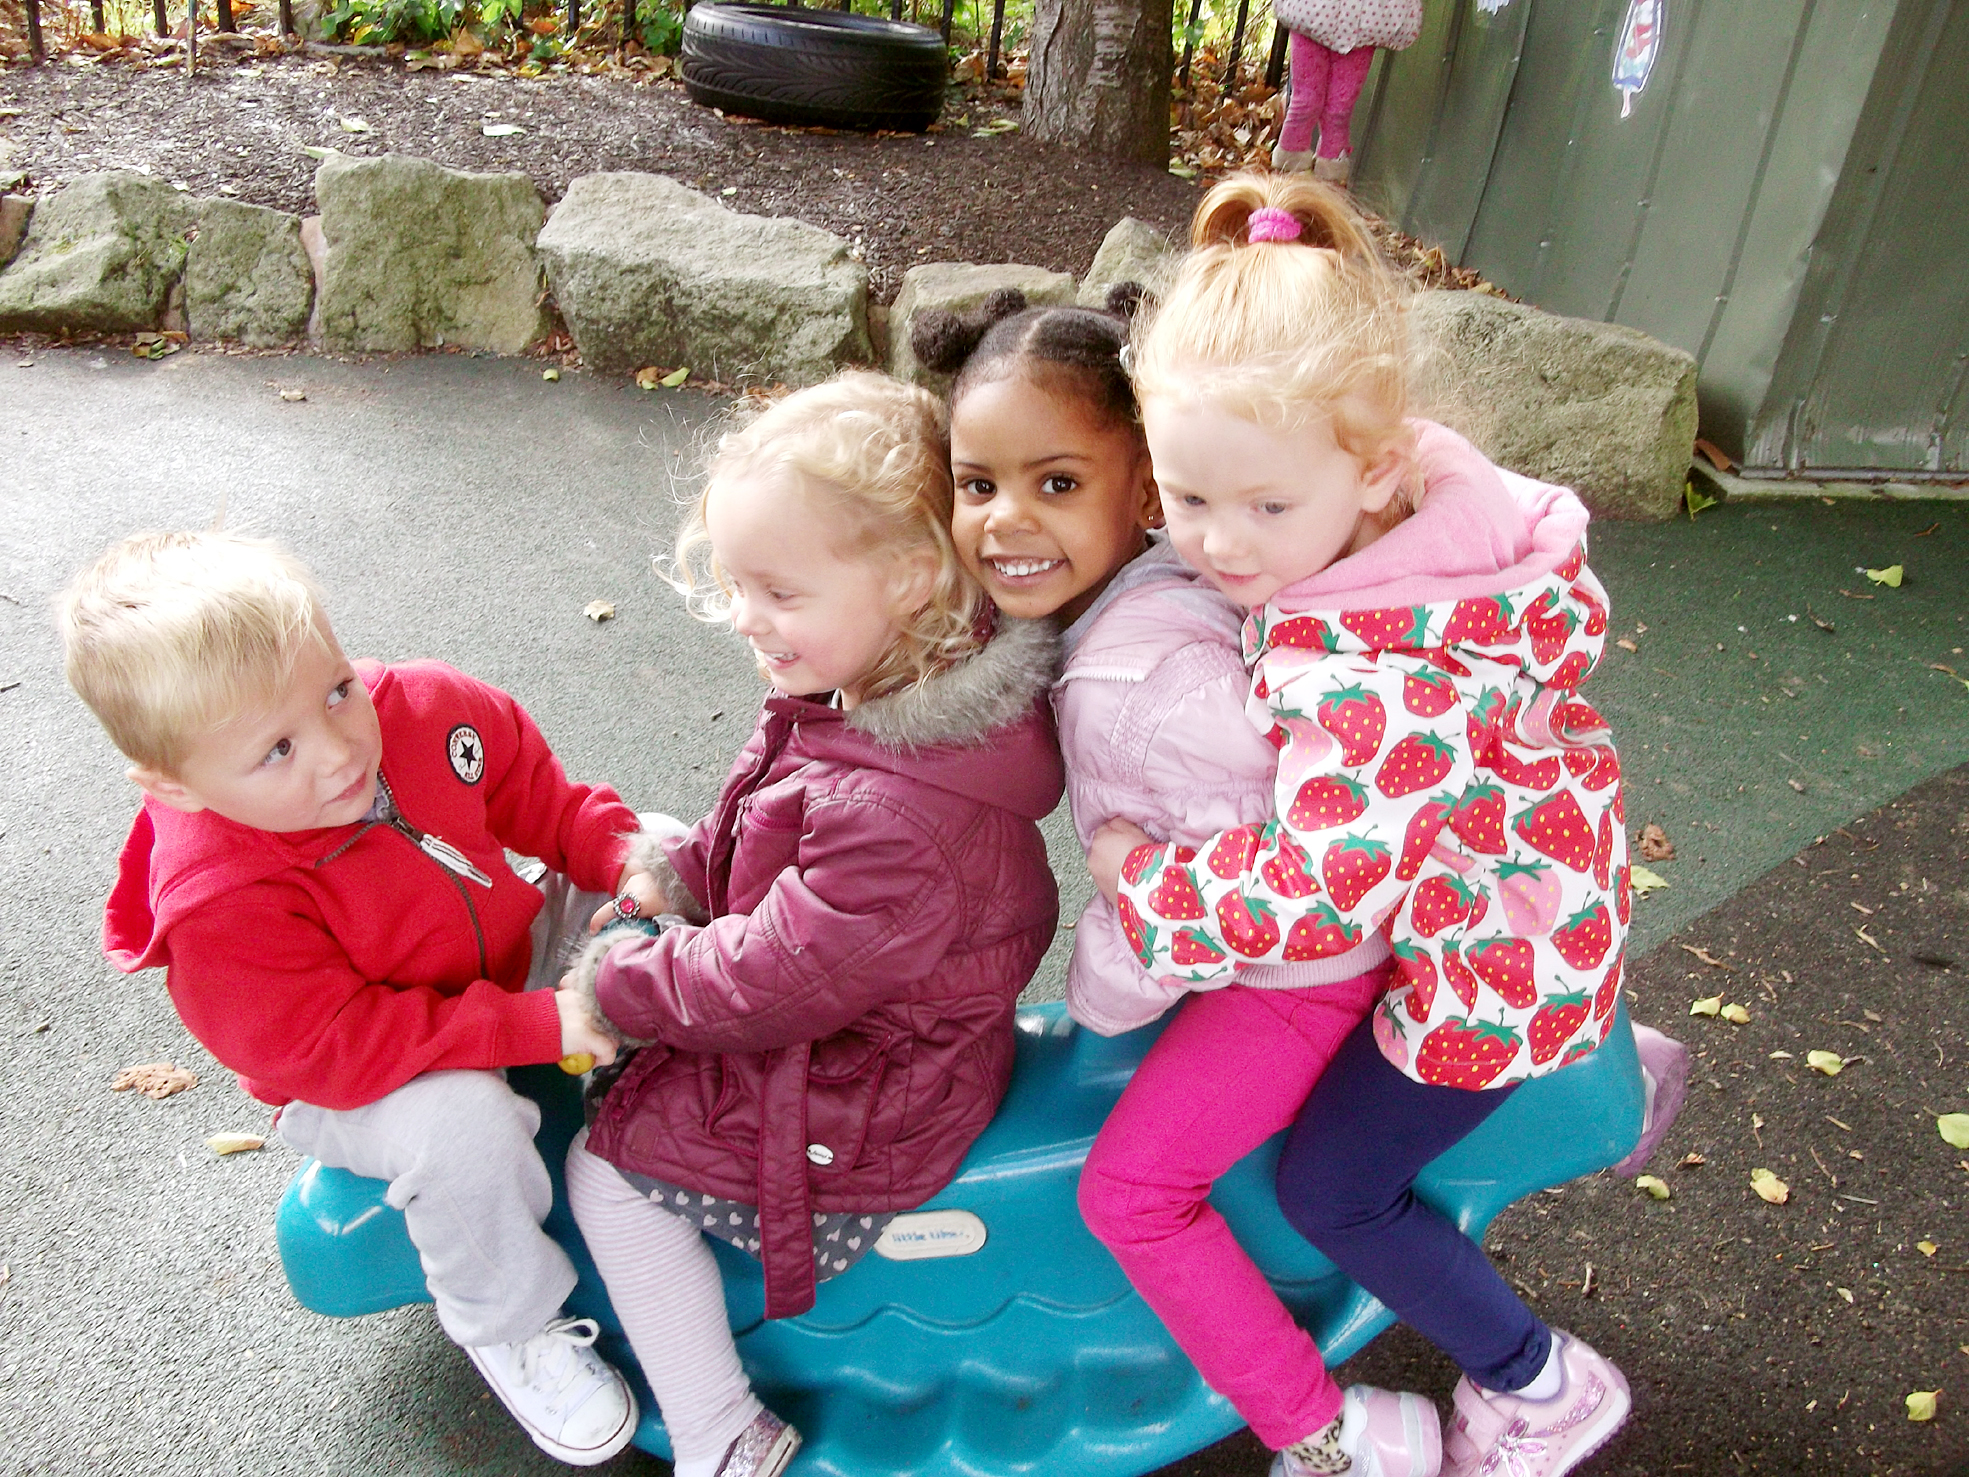 Having fun, from left Bradley Whittle, Emily Fishwick, Kasiya Evans and India Nuttall